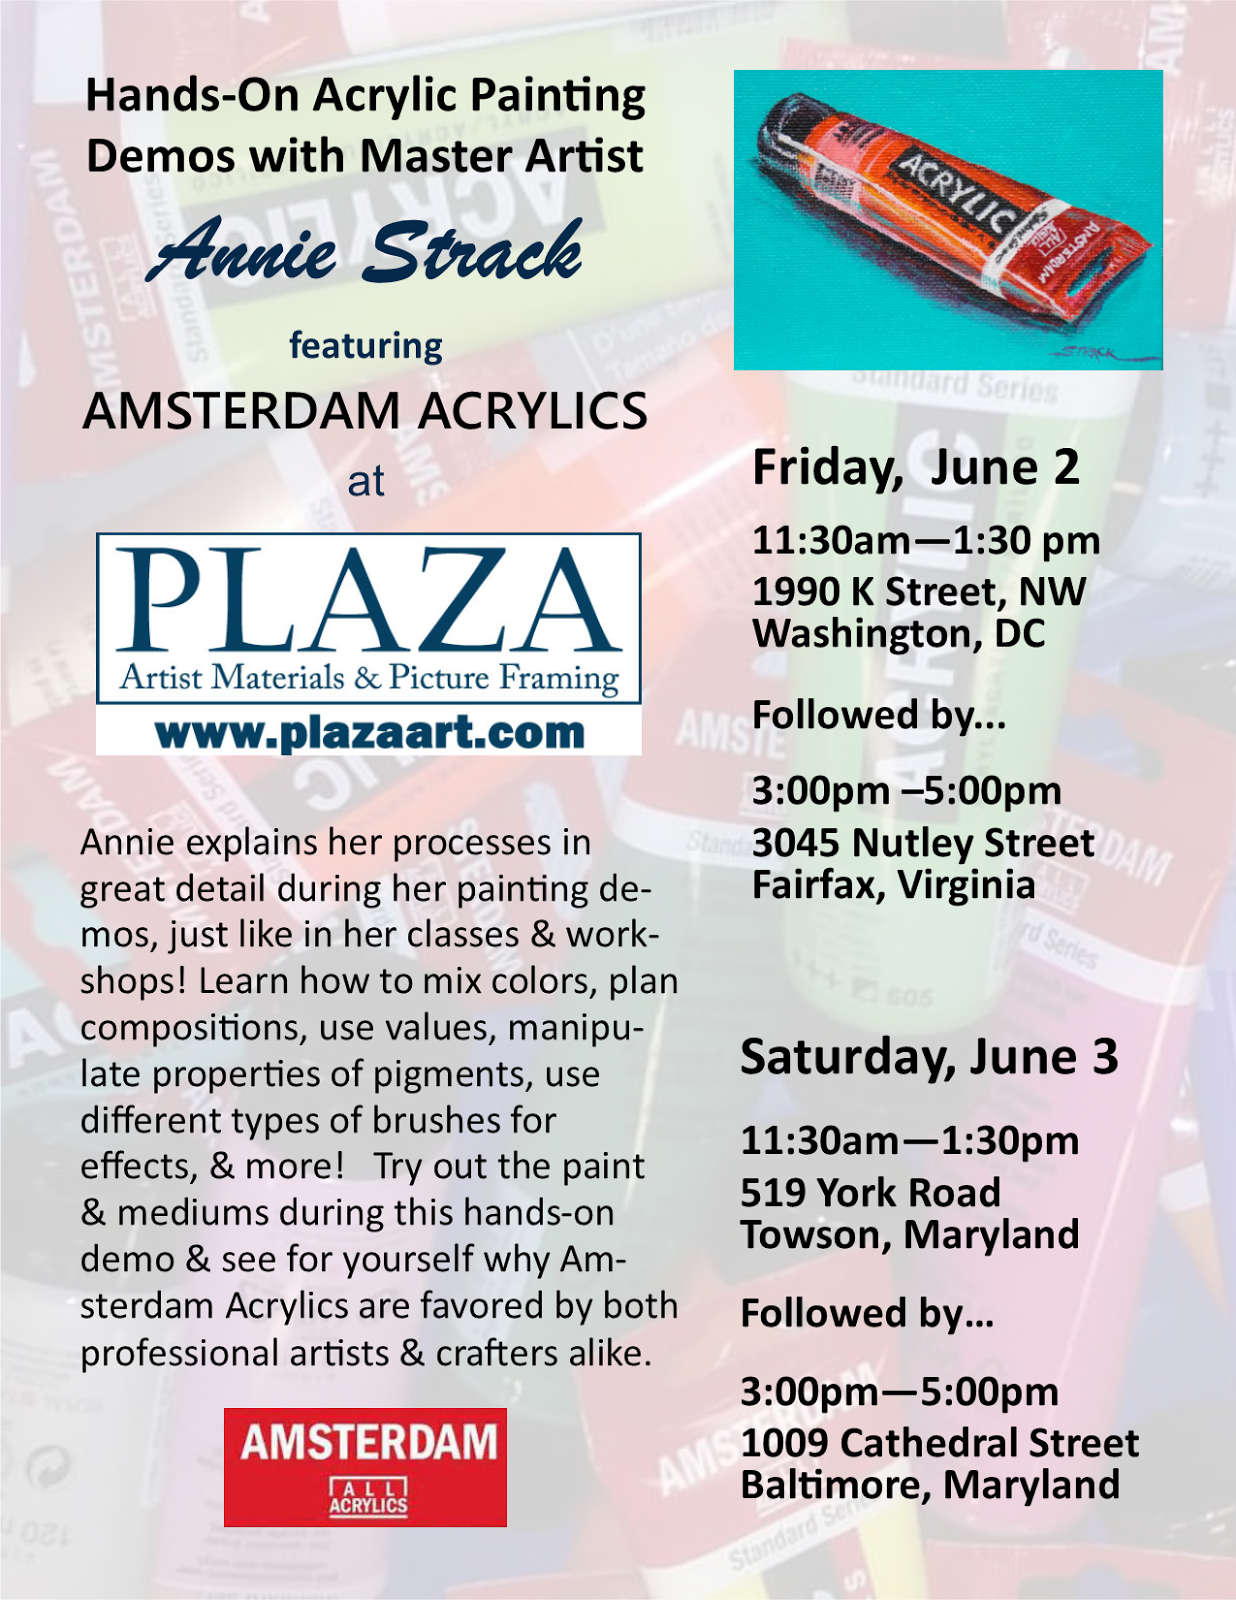 Annie Strack news: Acrylic Painting Demos at Plaza Art Stores!